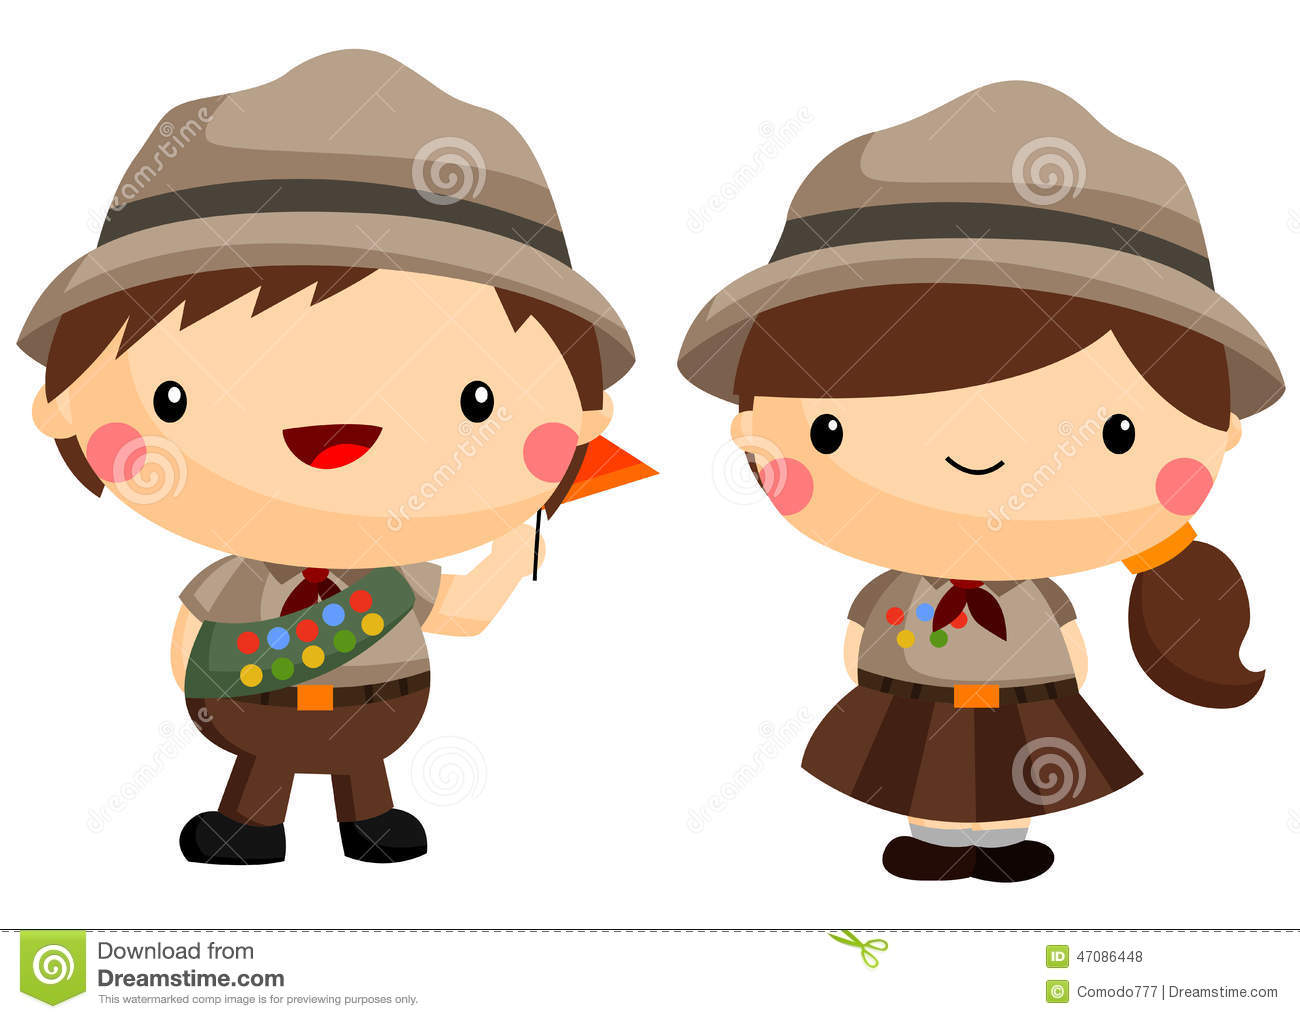 hight resolution of scout clipart illustration girl stock illustrations vectors svg freeuse